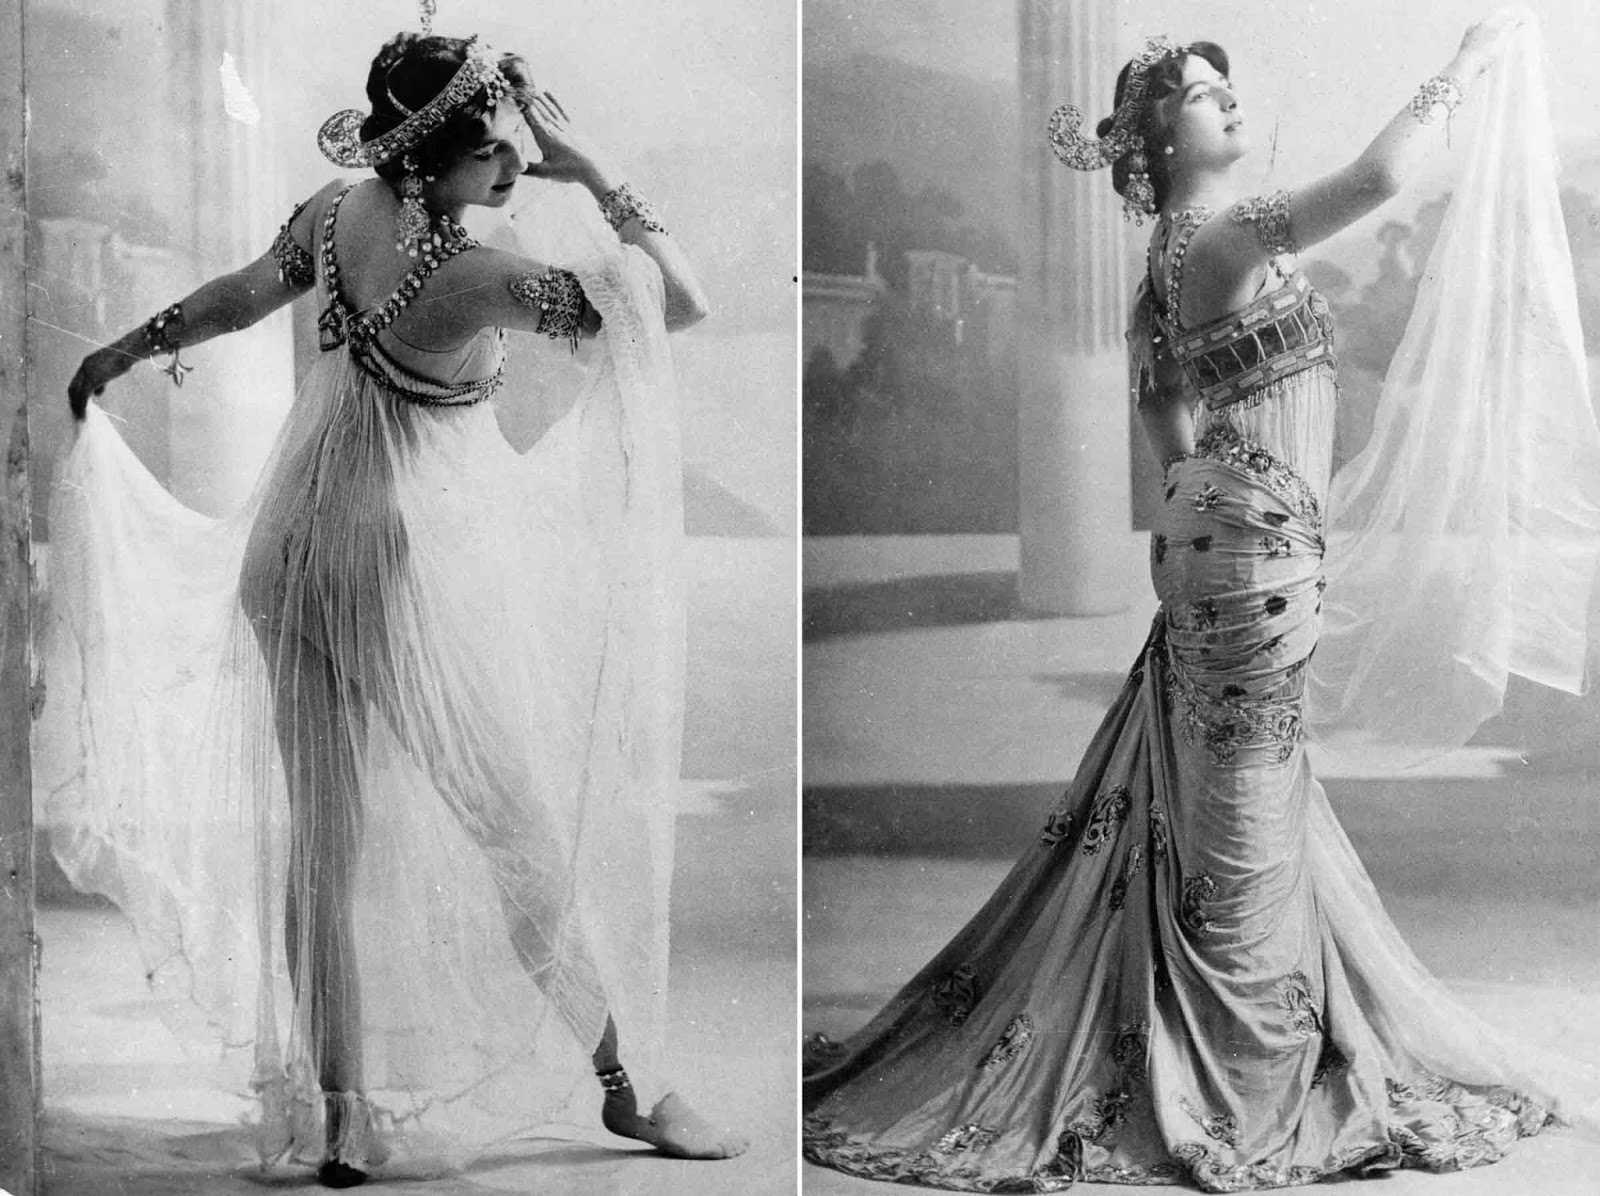 Promiscuous, flirtatious, and openly flaunting her body, Mata Hari captivated her audiences and was an overnight success from the debut of her act at the Musée Guimet on 13 March 1905.